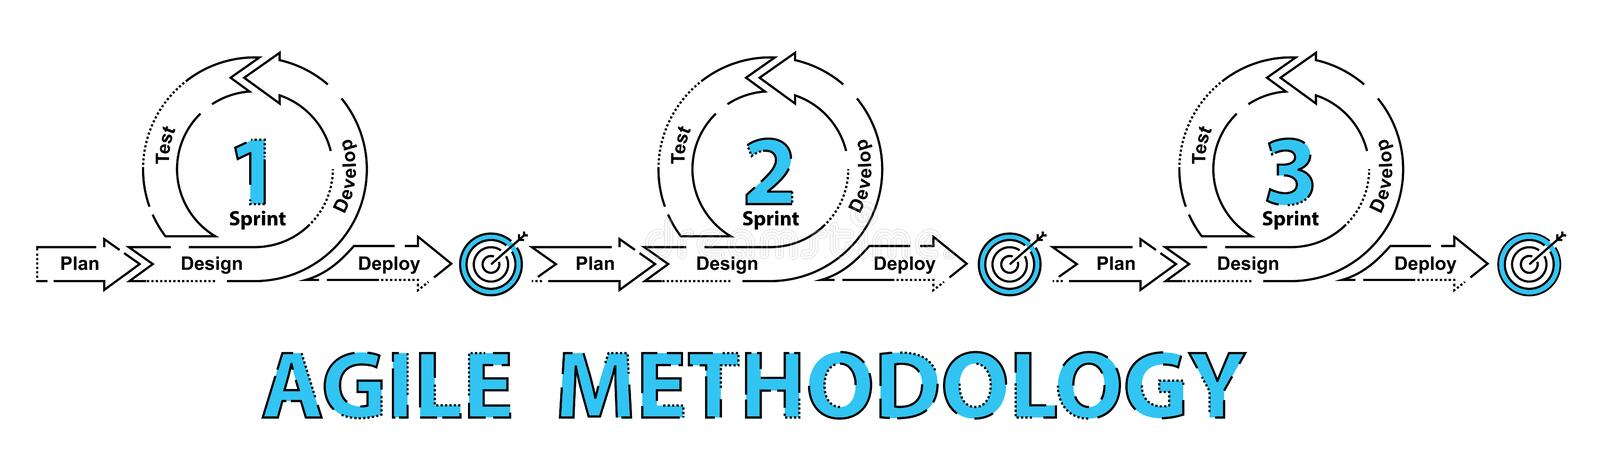 Agile software development methodology royalty free illustration